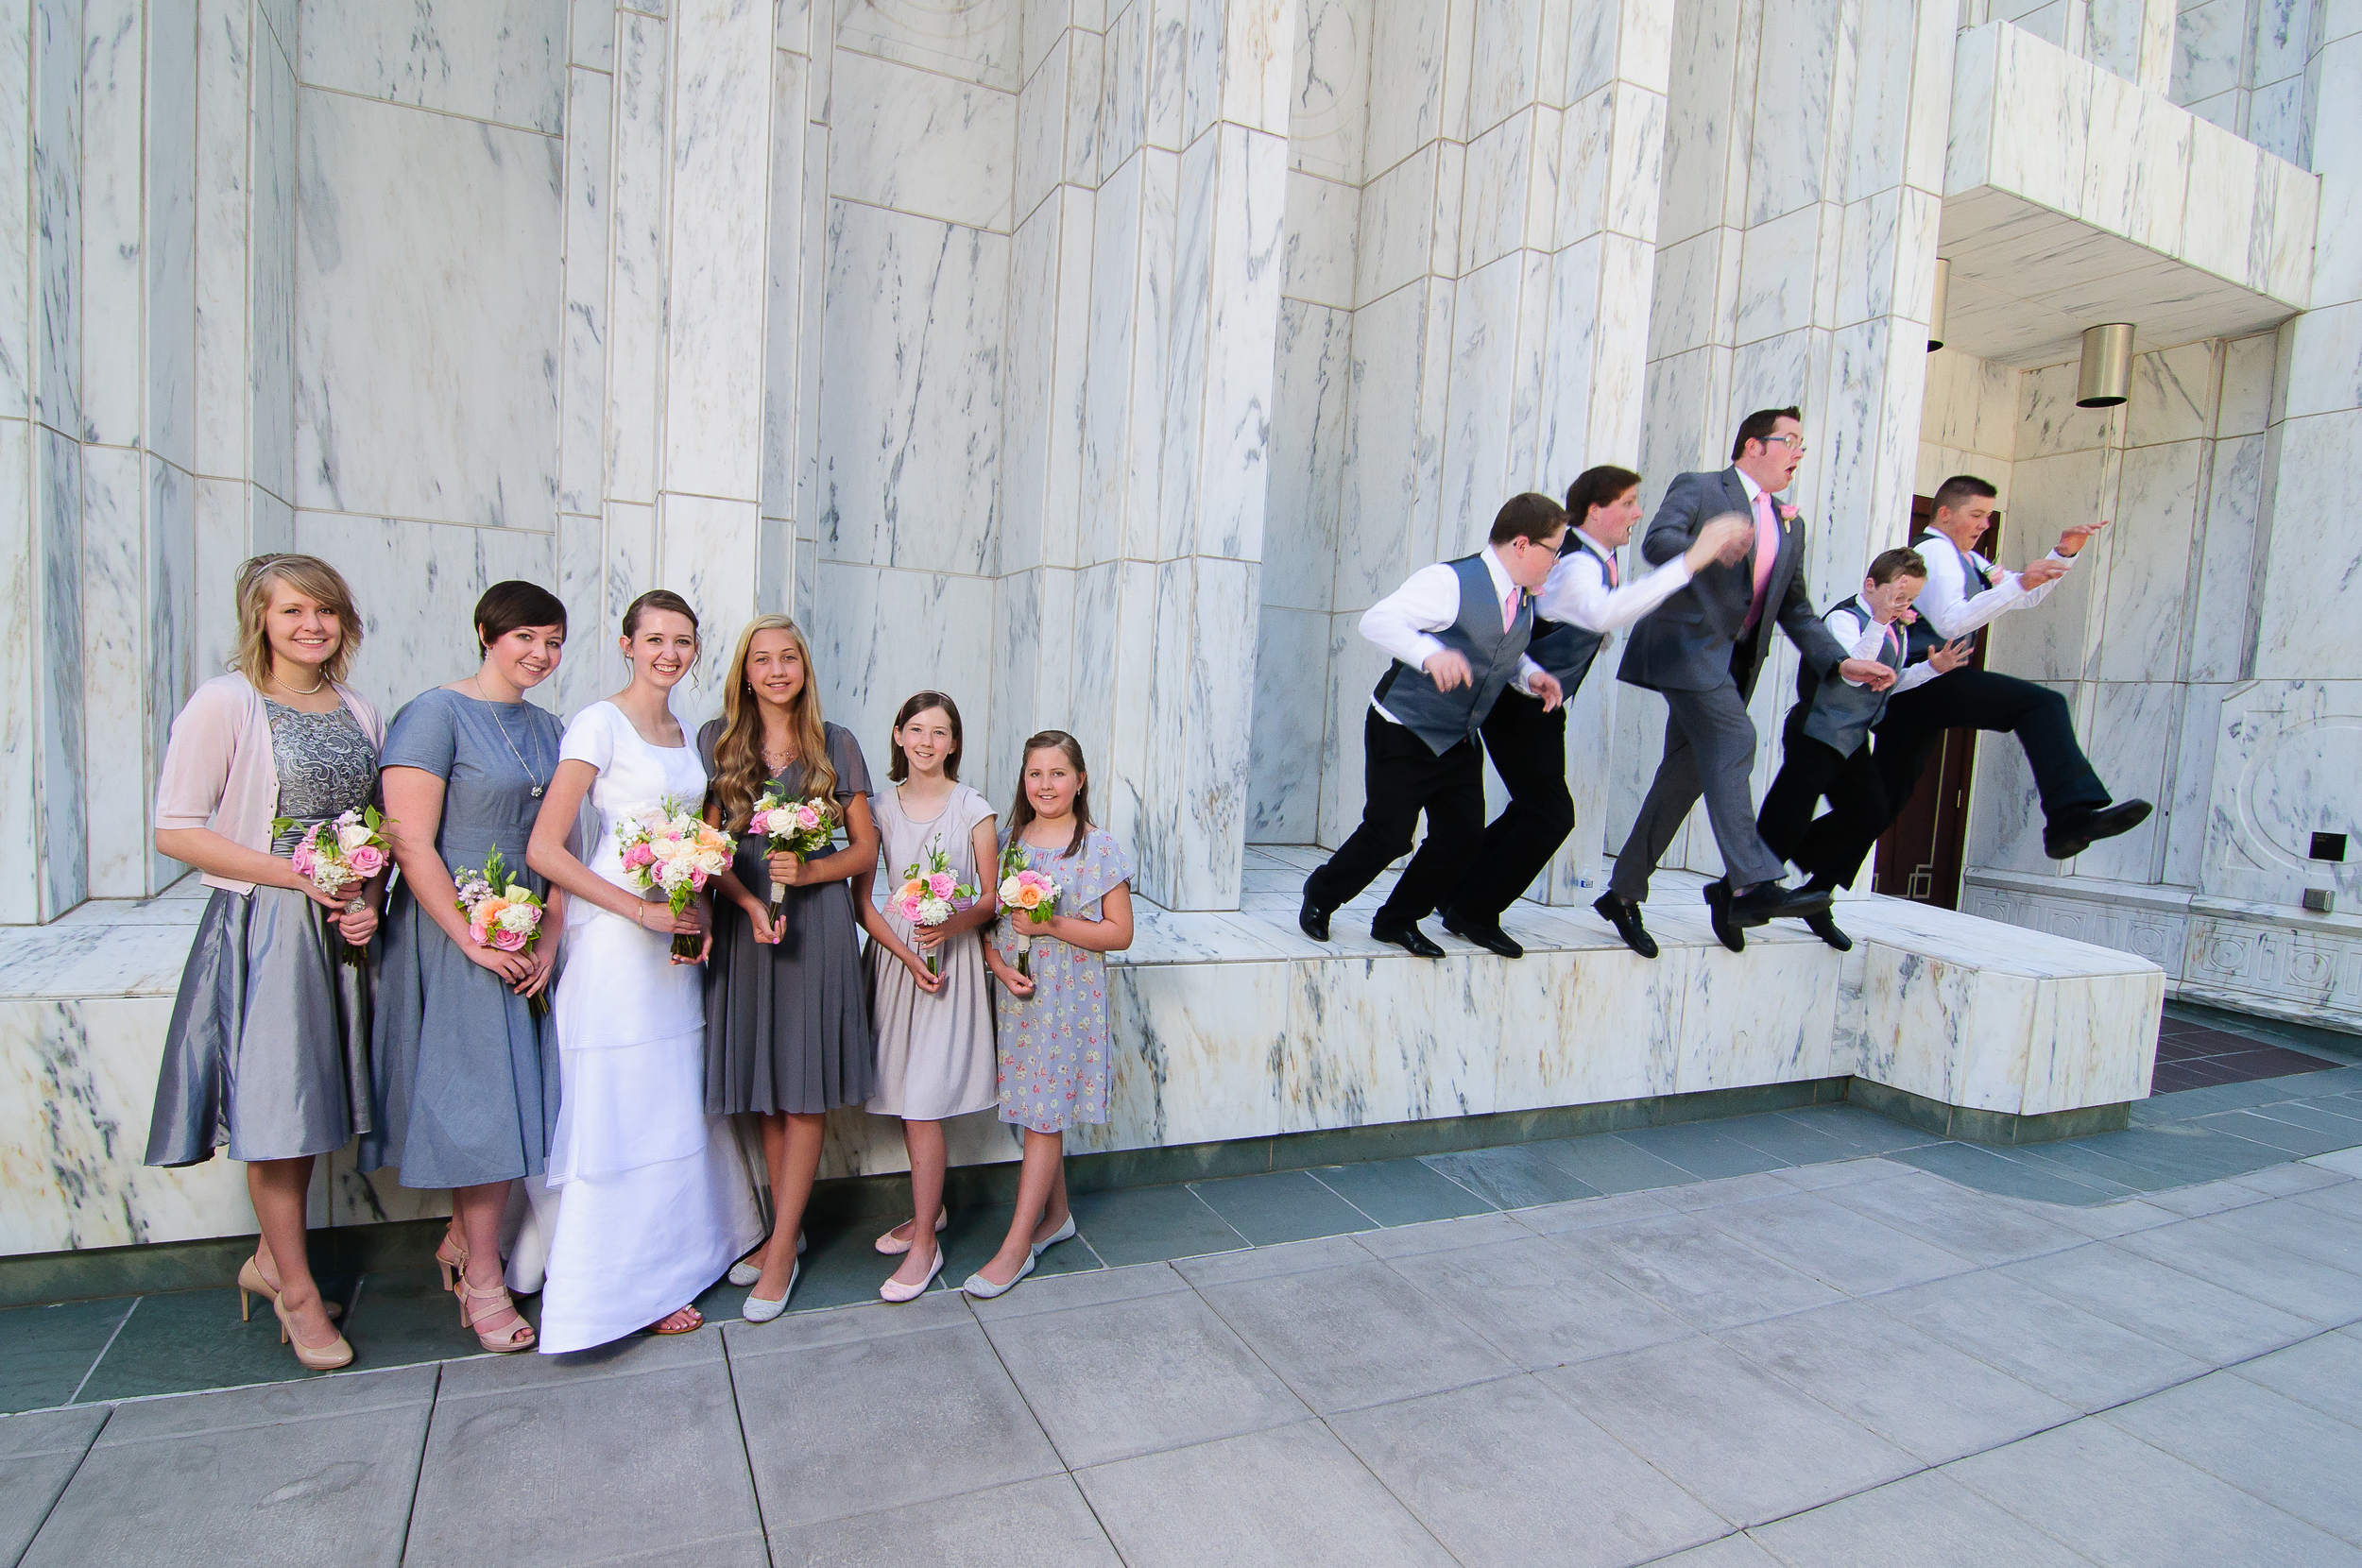 While I was staging the bridesmaids for a group shot my second shooter was jumping the groomsmen. A wide lens meant I could capture both at once.